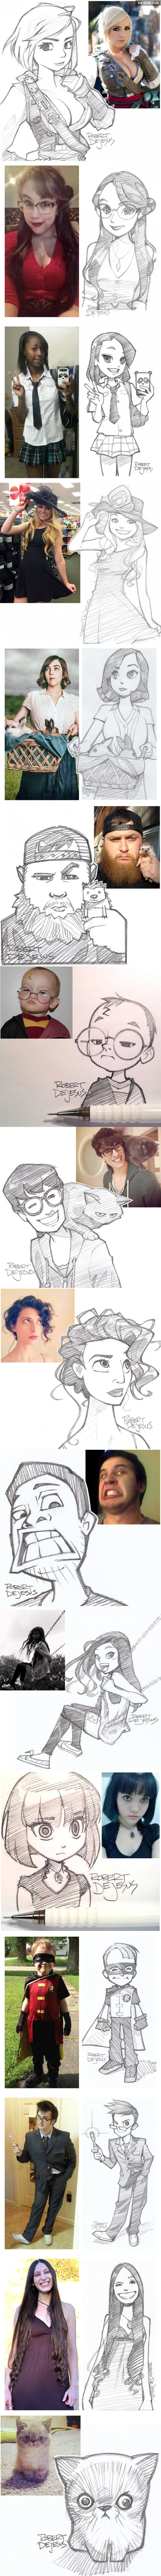 People And Their Cartoon Version. I really want this guy to draw a picture of me!!!